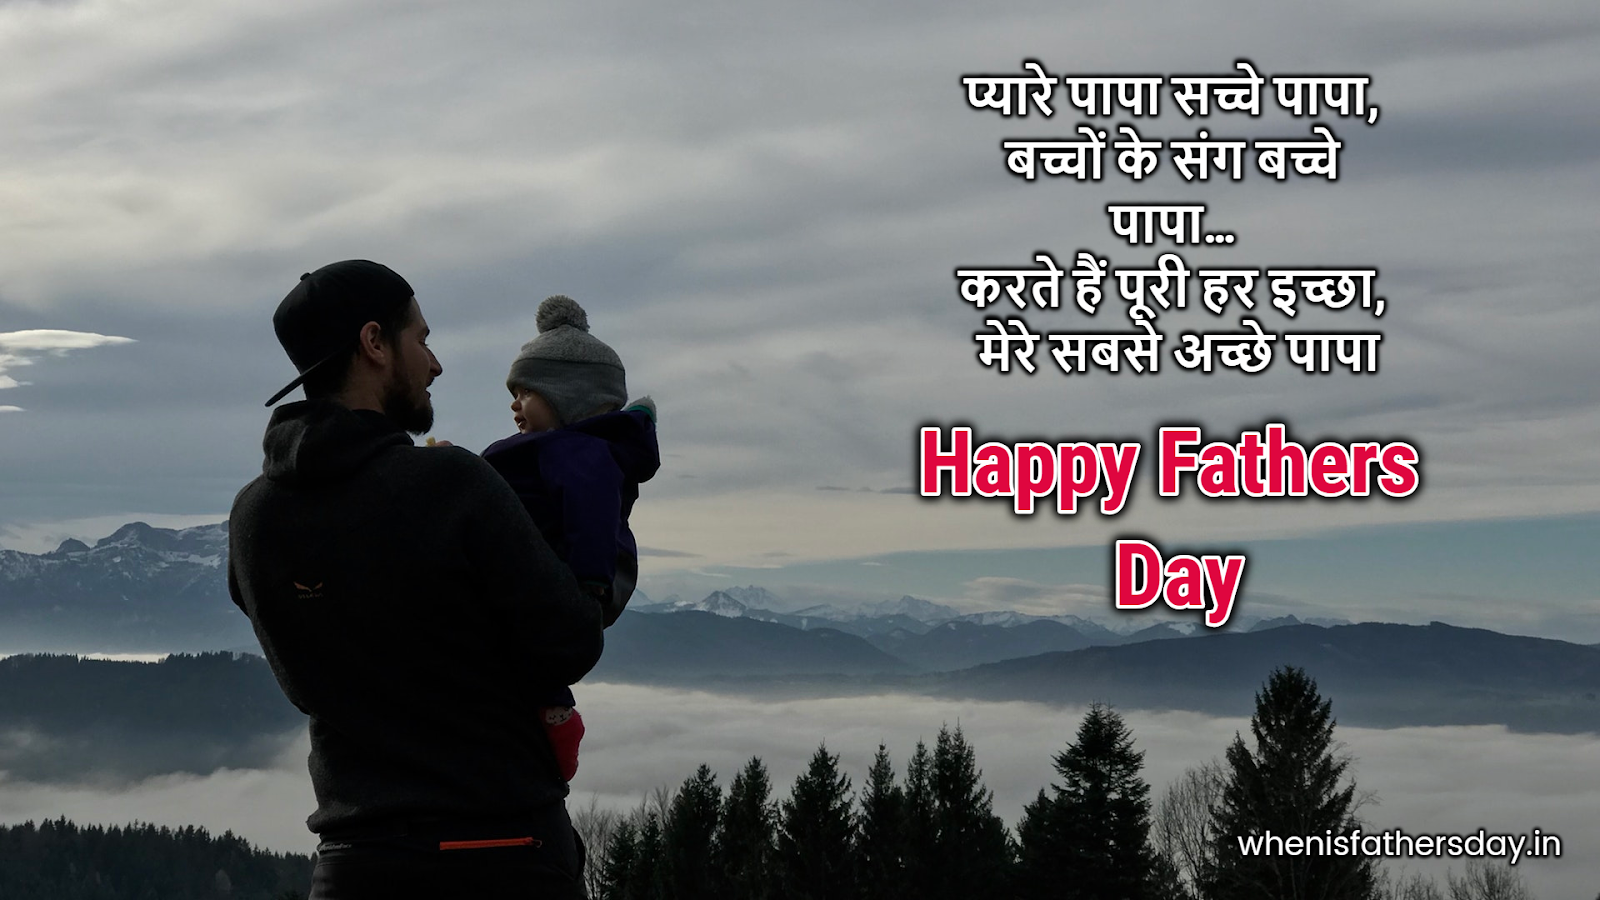 Happy Fathers Day 2018 Wishes Greetingsimagesquotes And